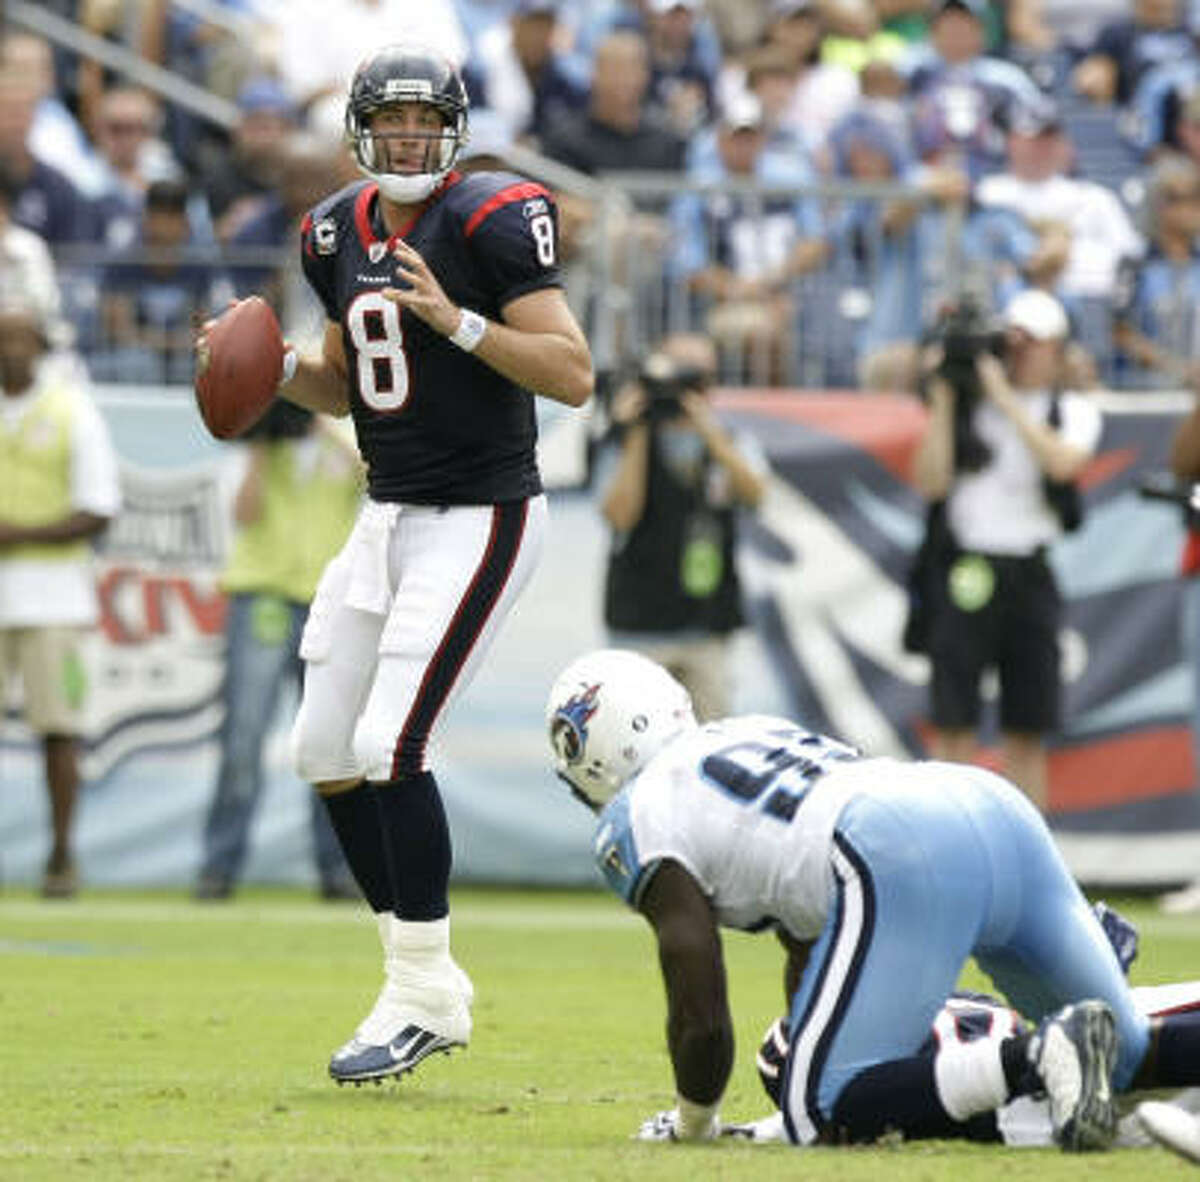 Houston Texans quarterback Matt Schaub (8) looks over an open receiver during the second quarter of an NFL football game against the Tennessee Titans at LP Field Sunday, Sept. 20, 2009, in Nashville. Schaub found Andre Johnson for a 72-yard touchdown reception on the play. The Texans beat the Titans 34-31. ( Brett Coomer / Chronicle )